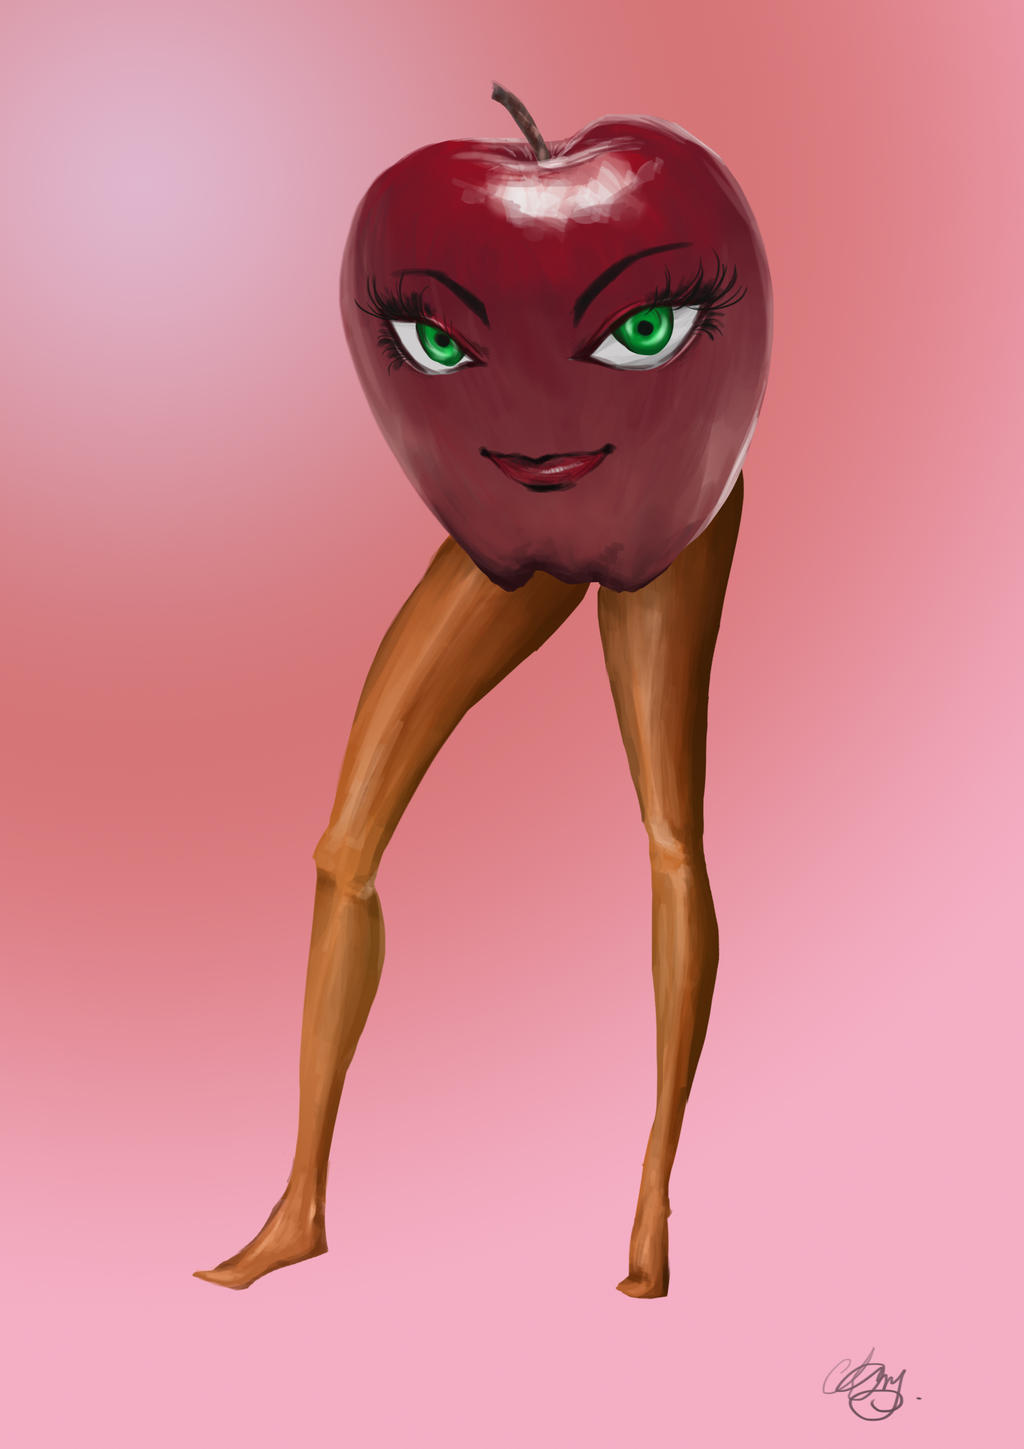 aesthetic apple by SongOfEvangelion on DeviantArt